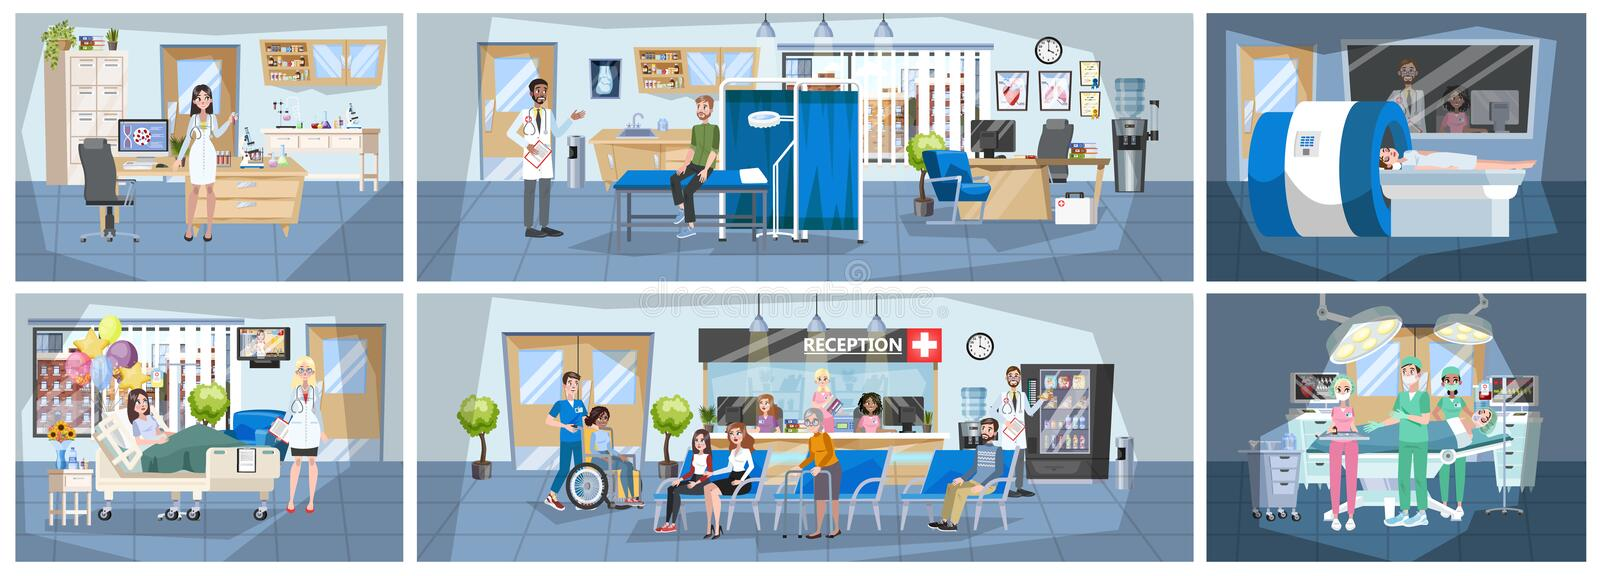 Hospital building interior. Doctor office and surgery room vector illustration